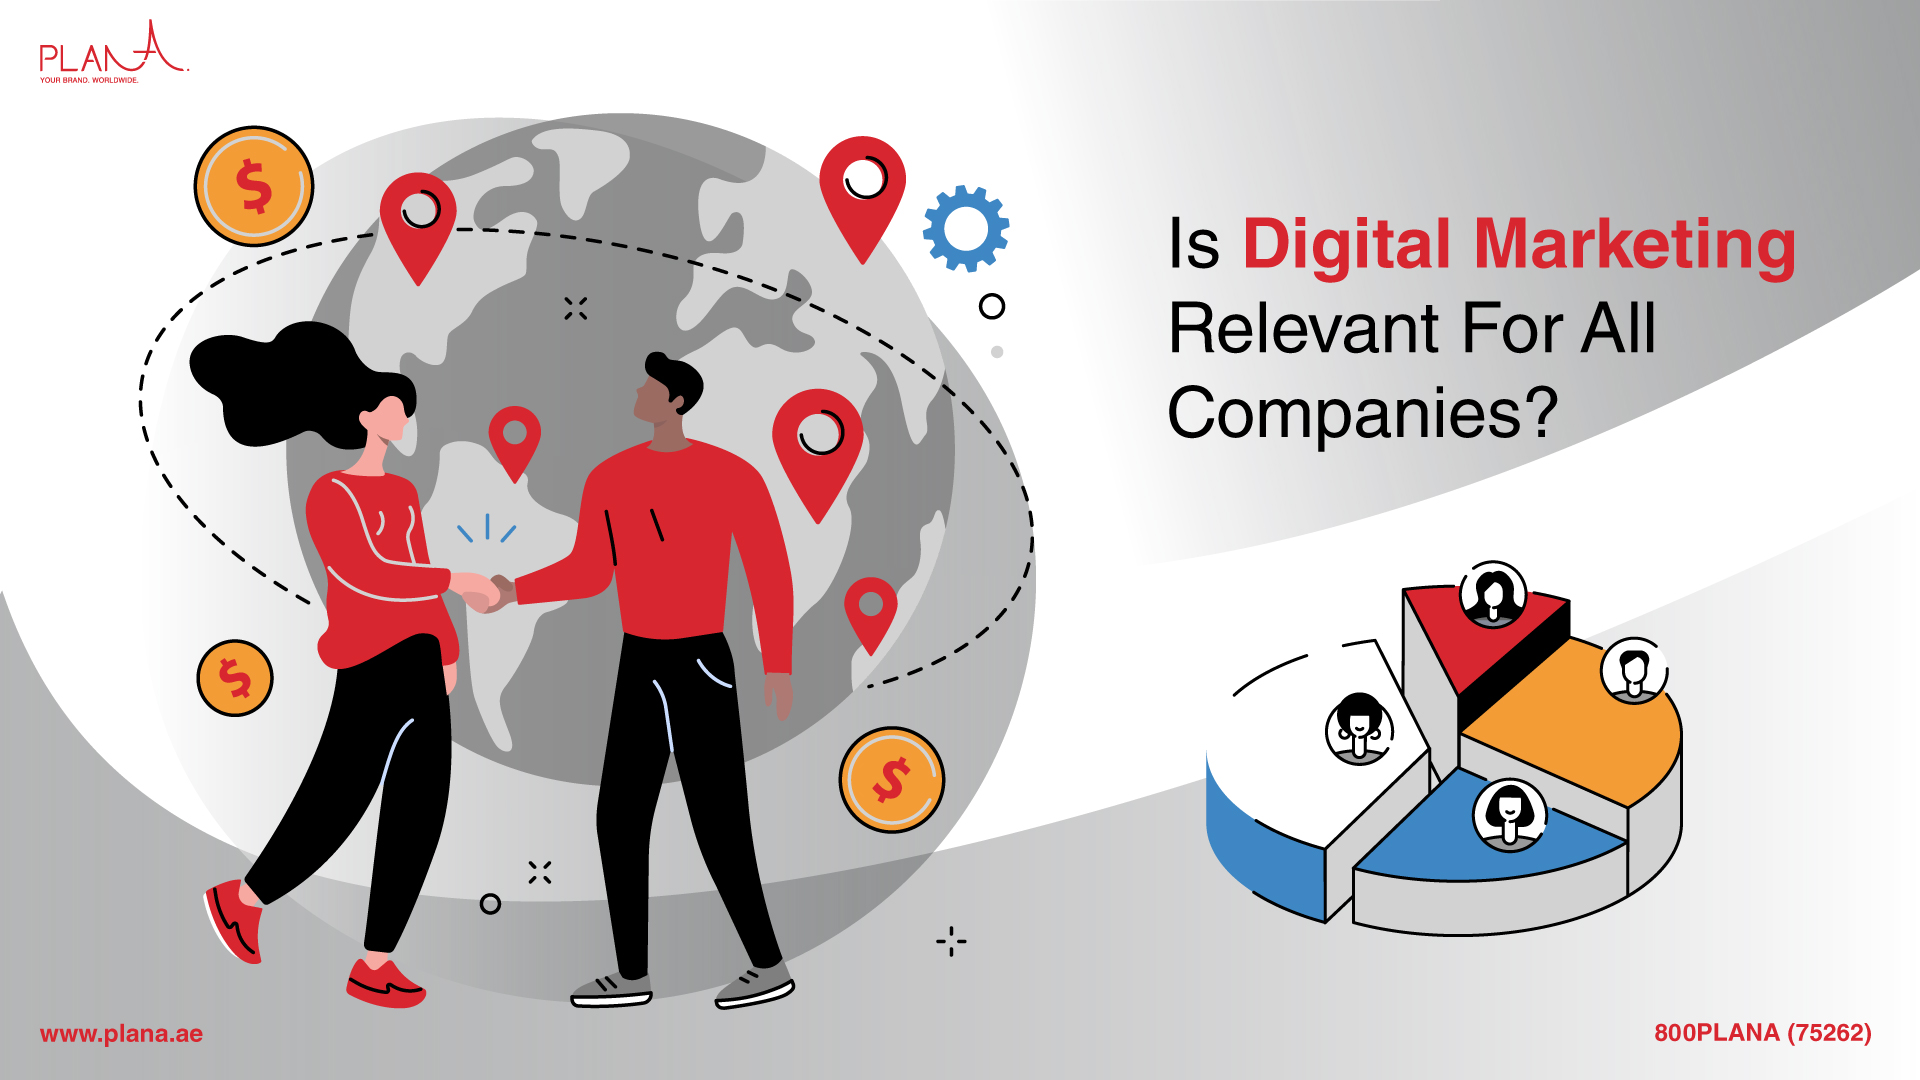 Is Digital Marketing Relevant for All Companies?